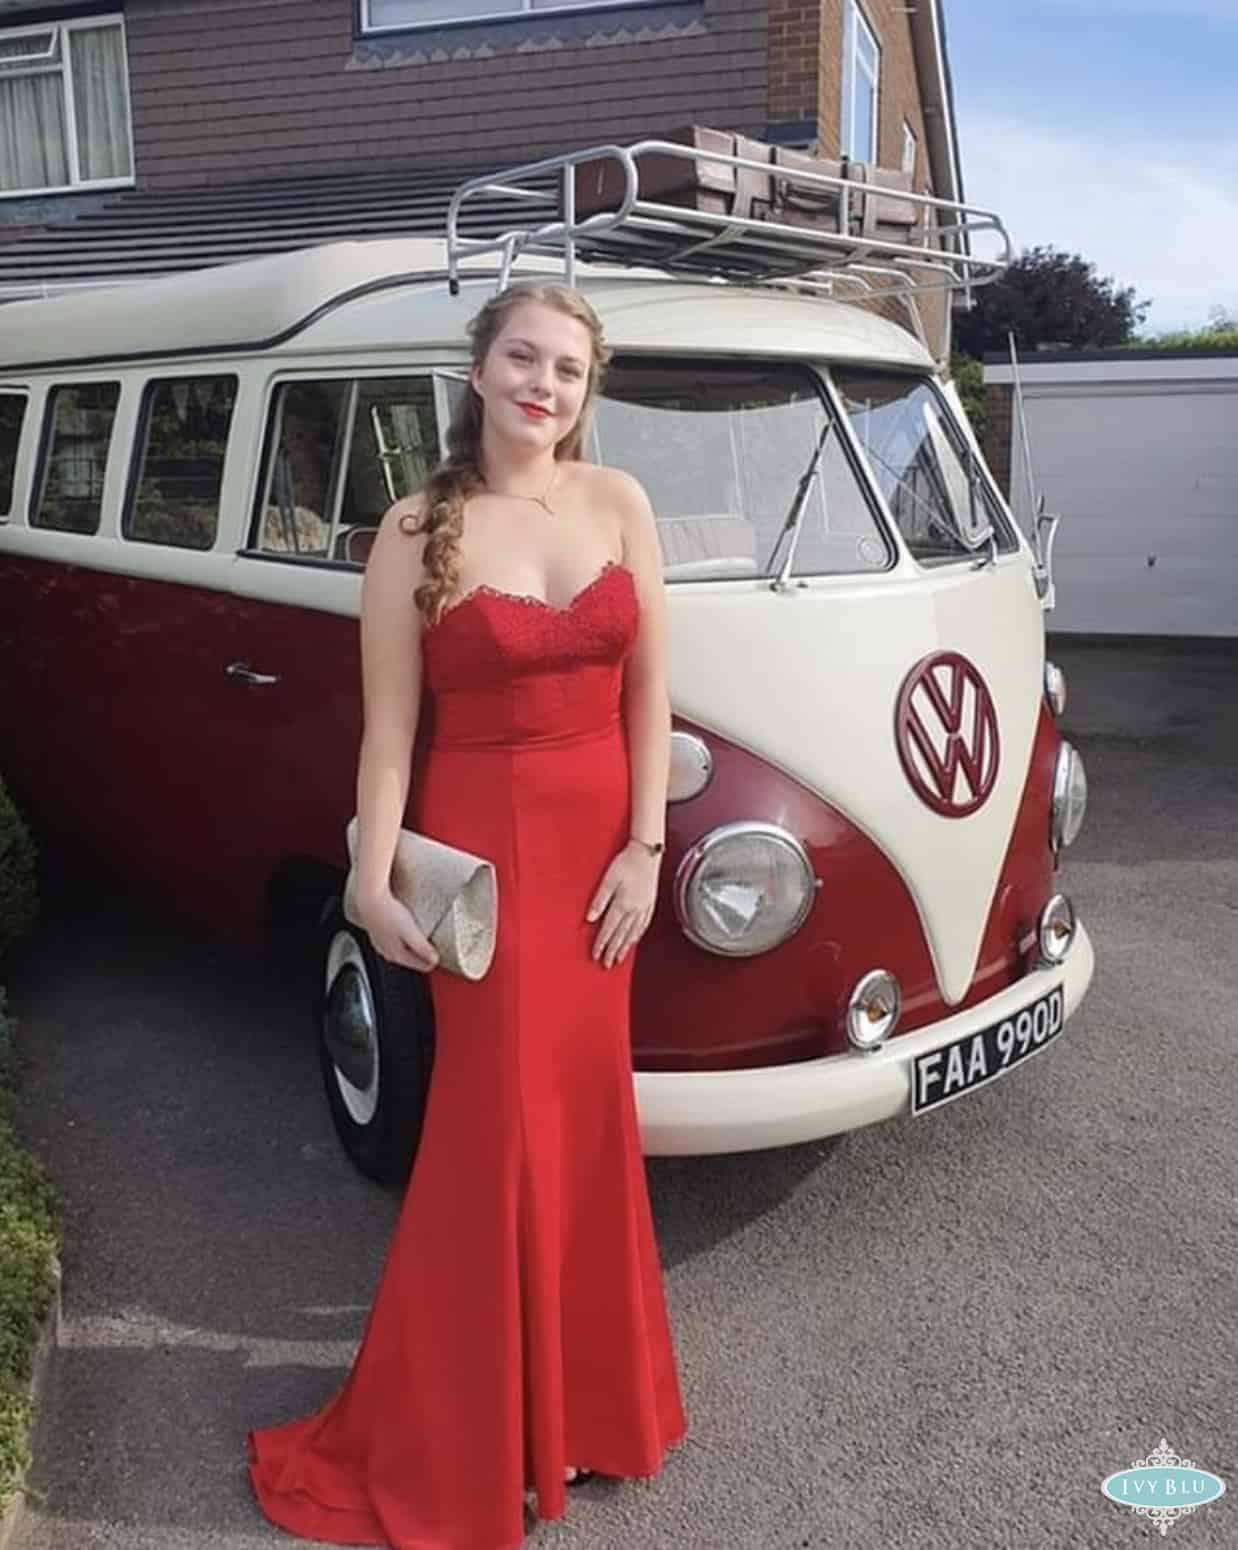 Girl In Long Red Dress Standing By Camper Van